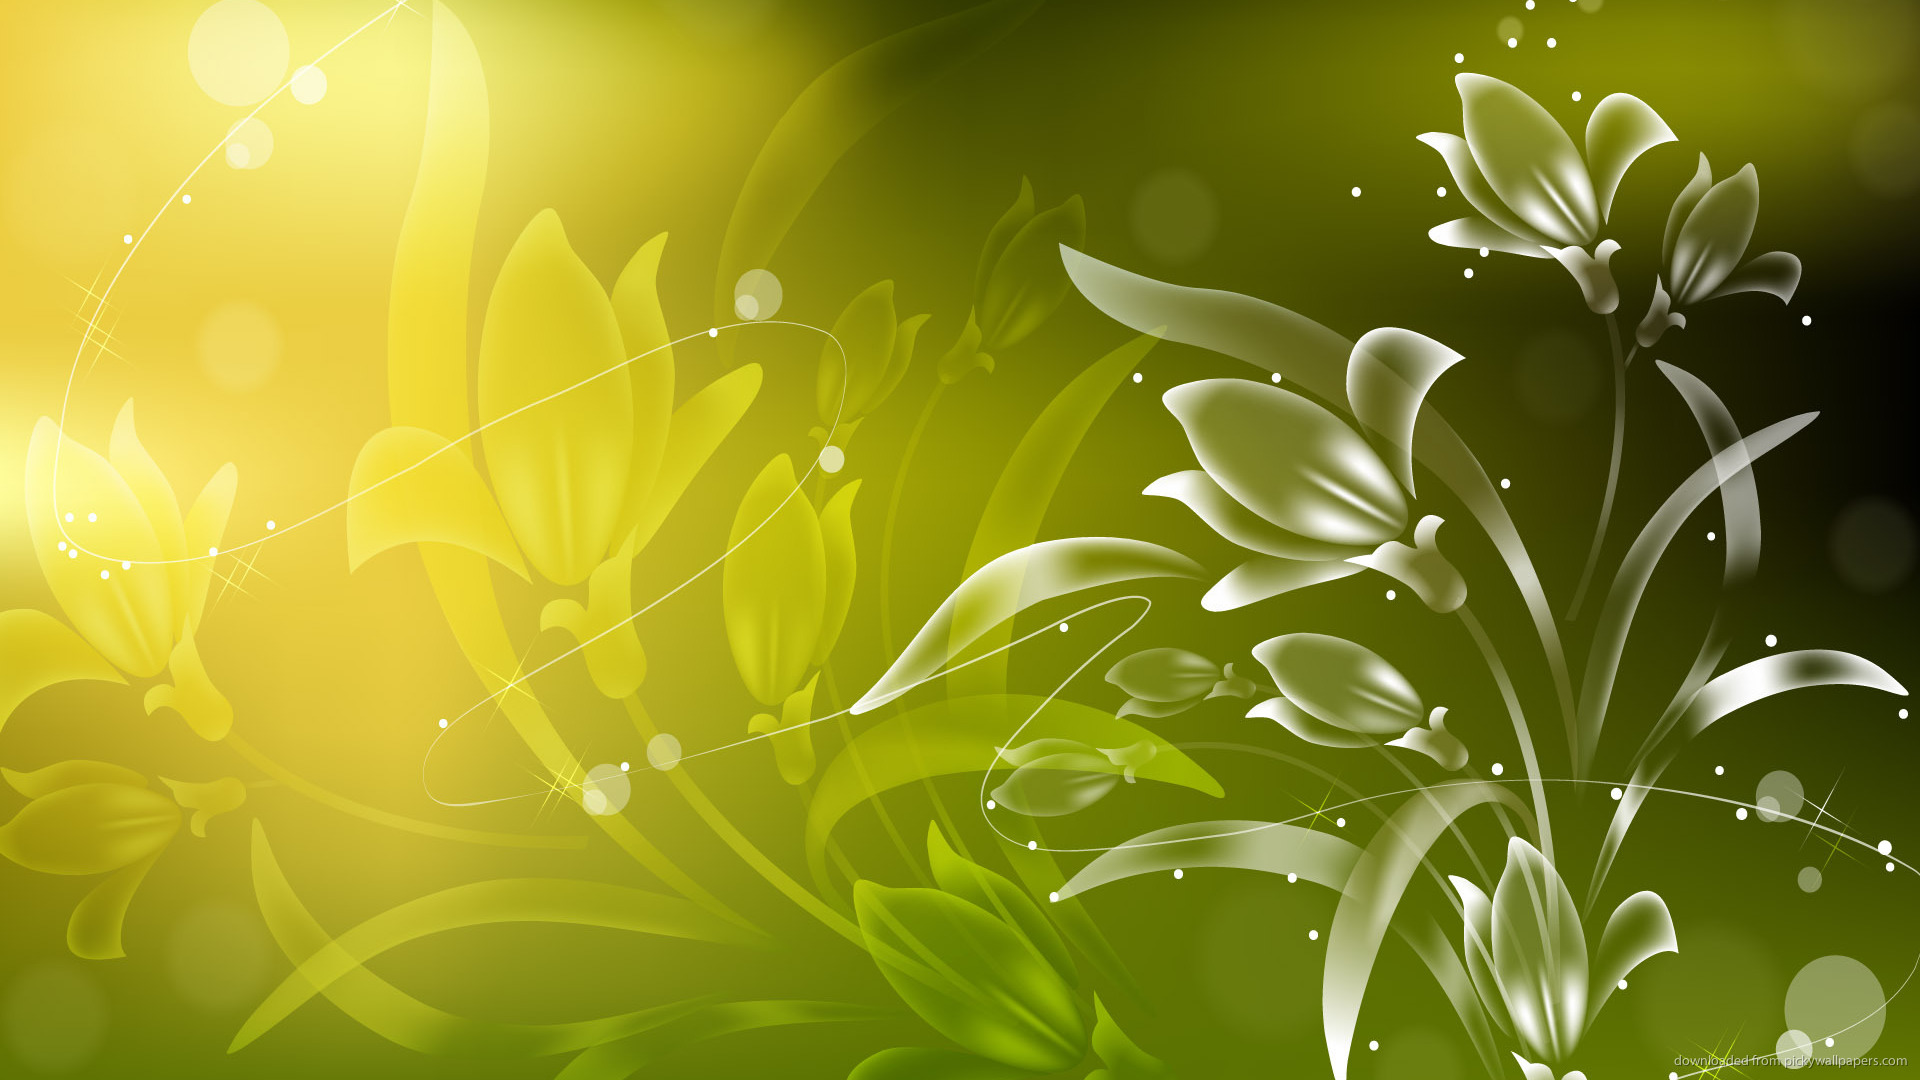 HD Green Flowers Wallpaper 1920x1080